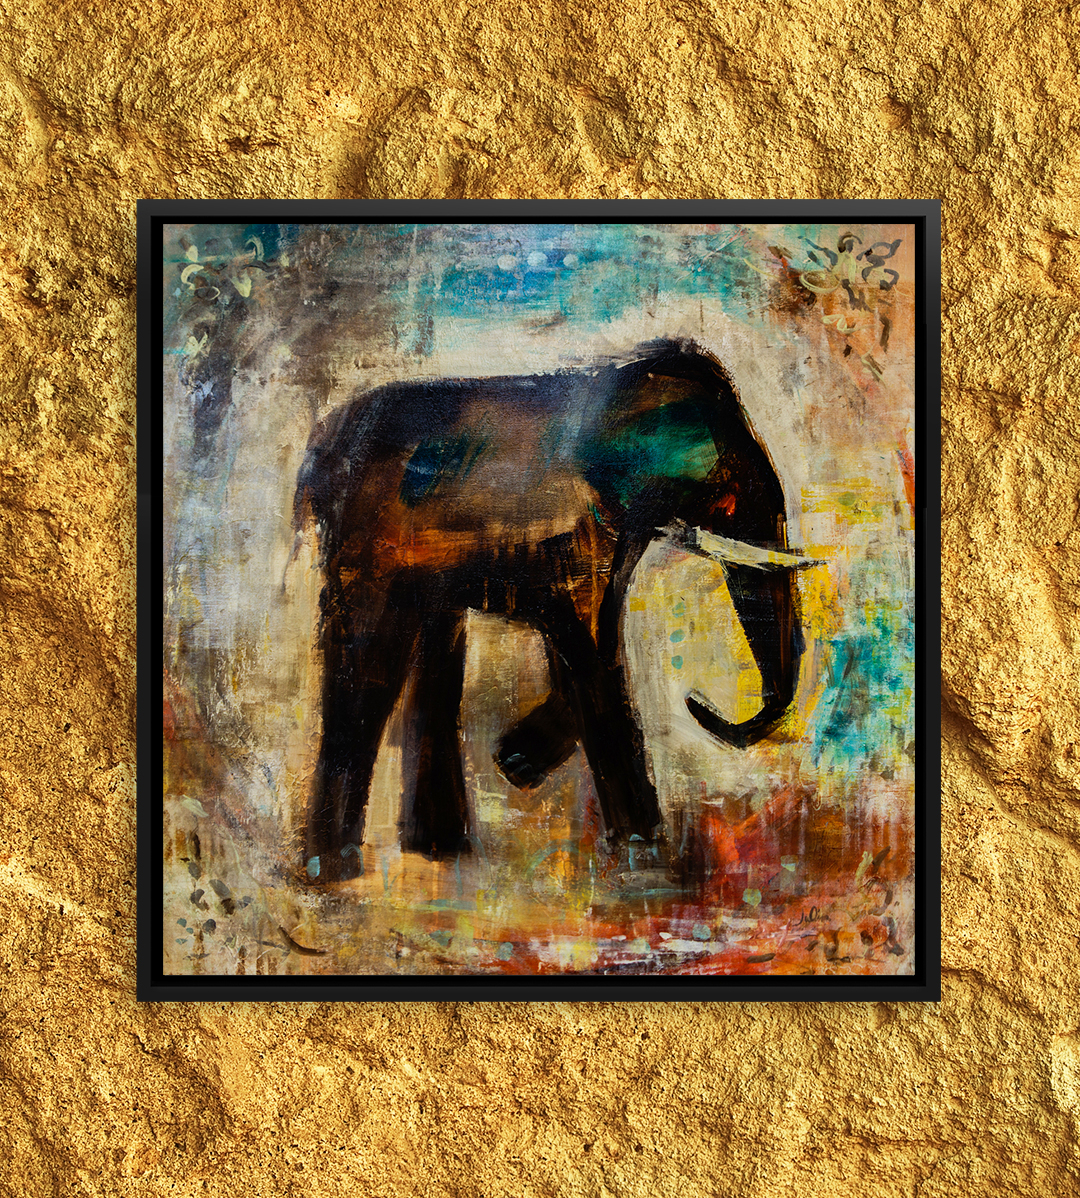 painting of an elephant with tusks that looks like a cave drawing